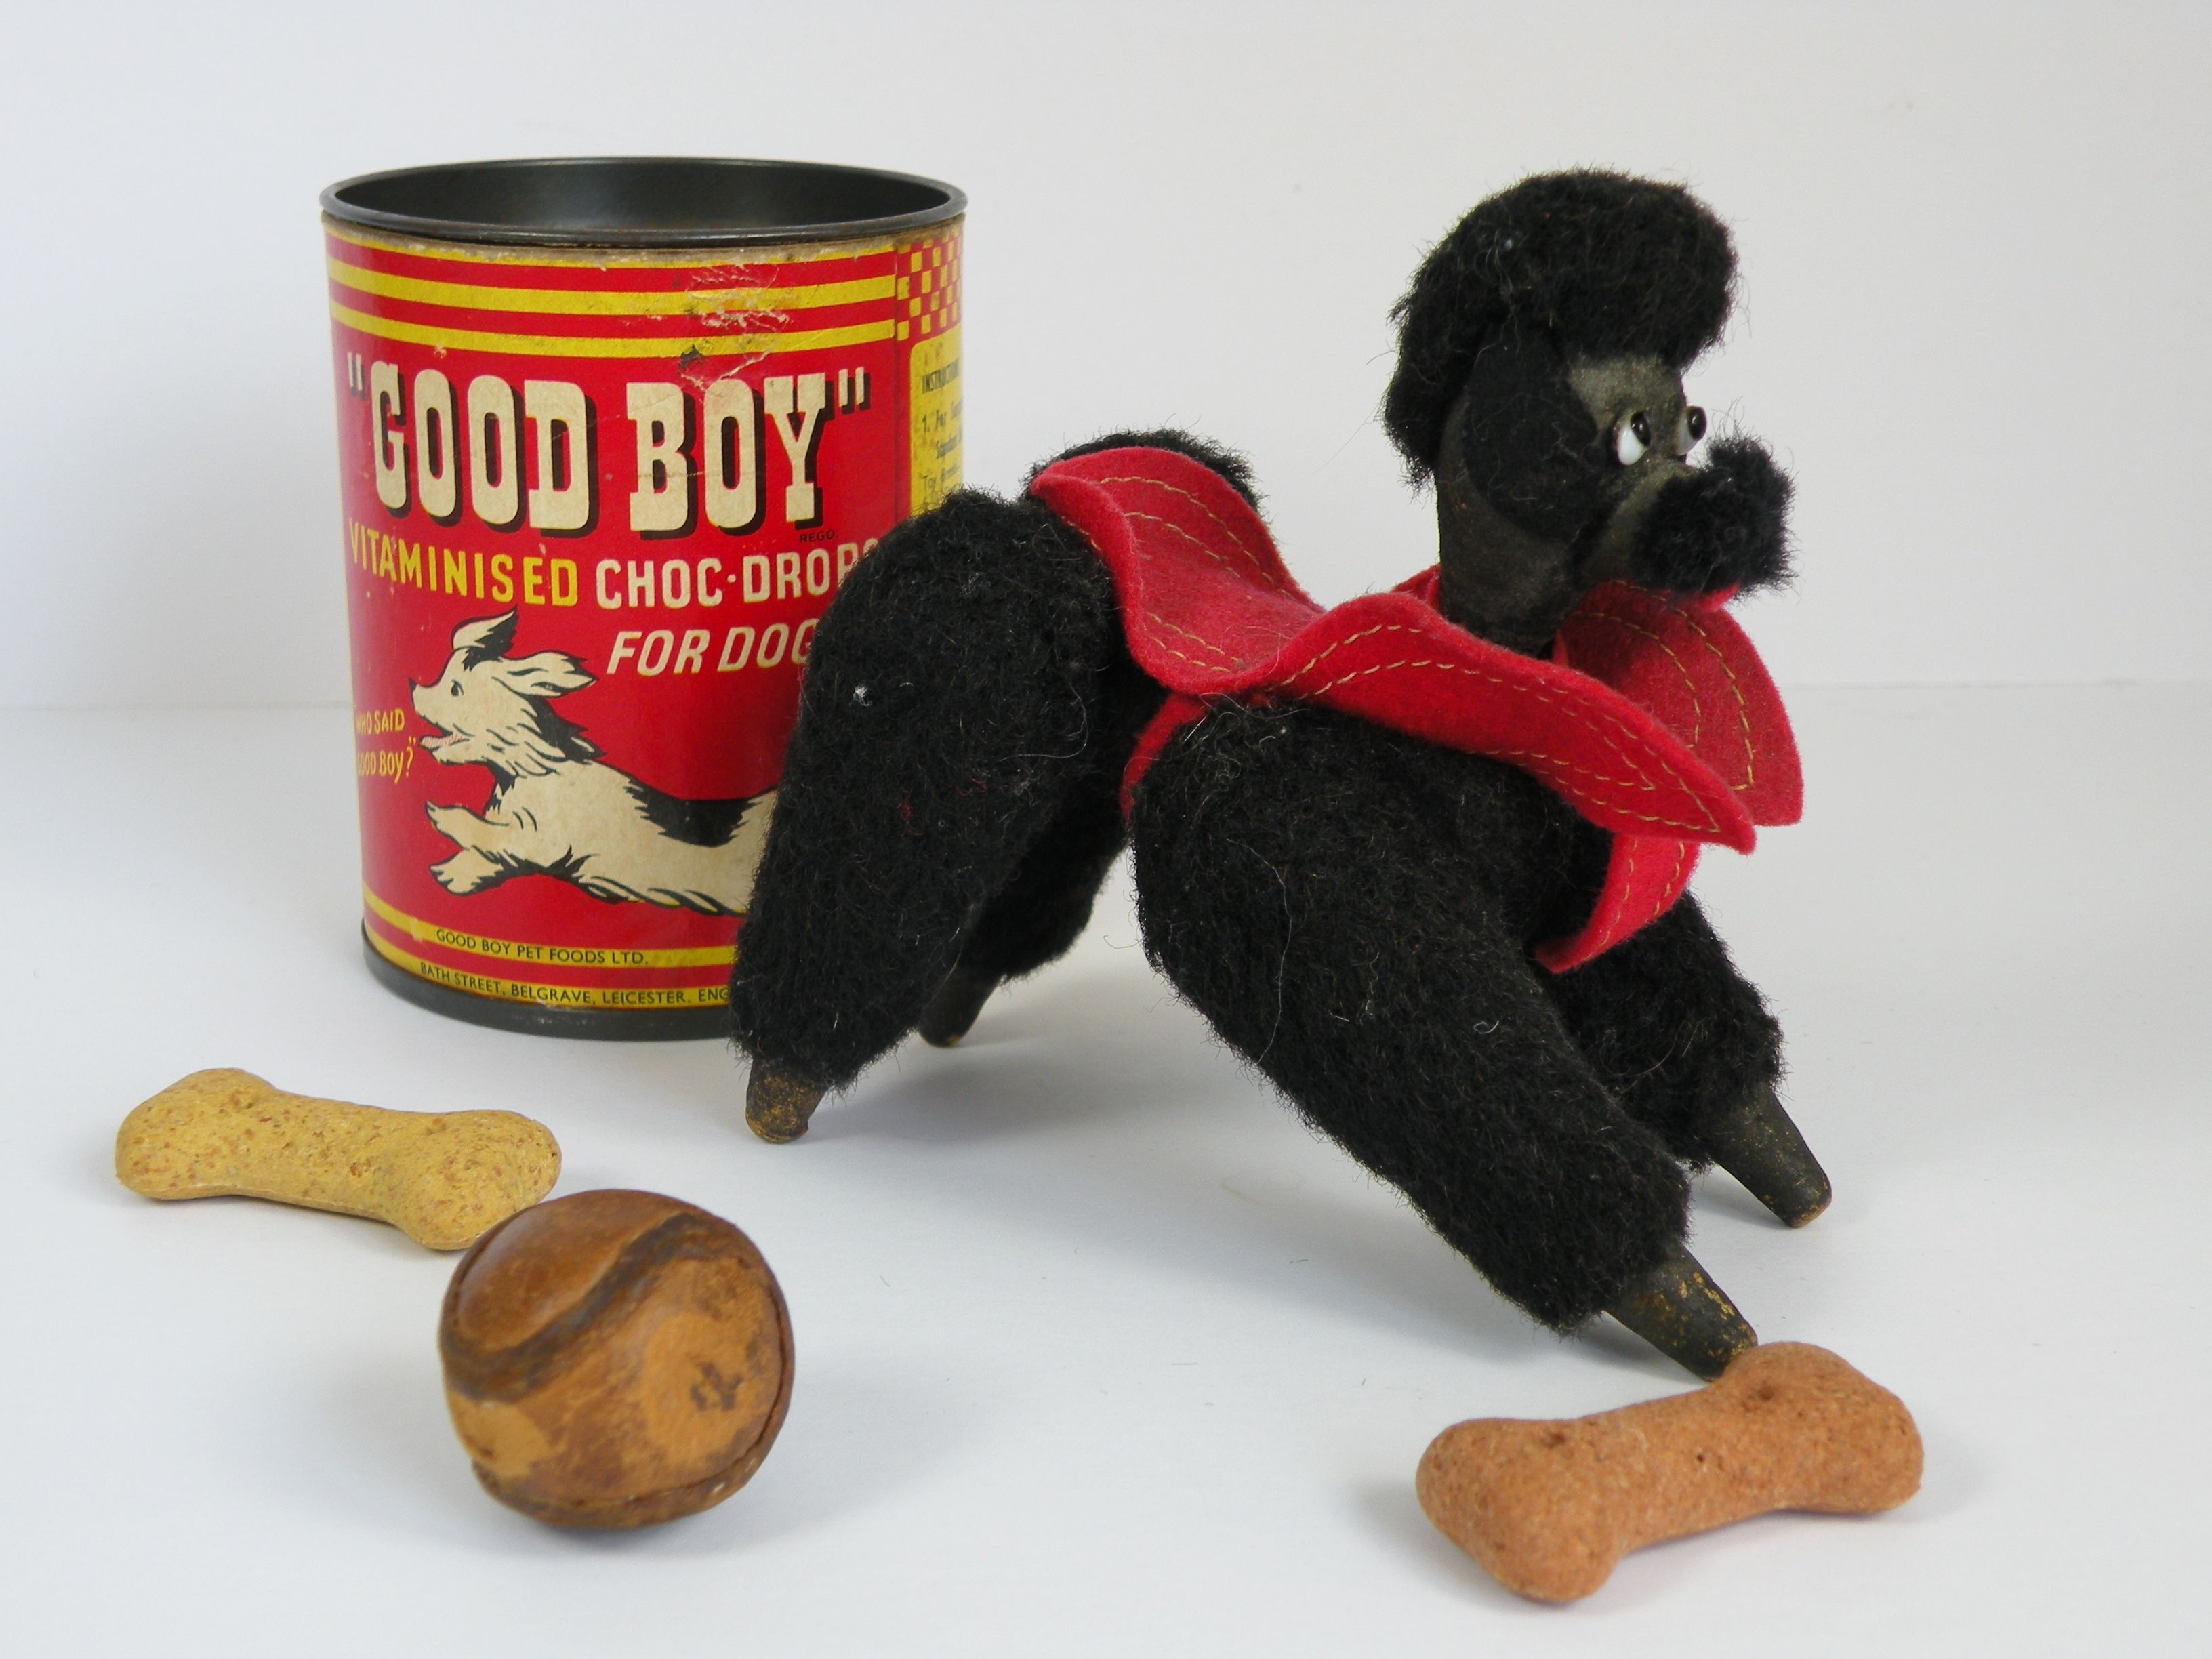 Inkspot A Tiny Little Woold And Wooden Jointed Bodied Poodle C1950 Www Onceuponatimebears Co Uk Pets For Sale Food Animals